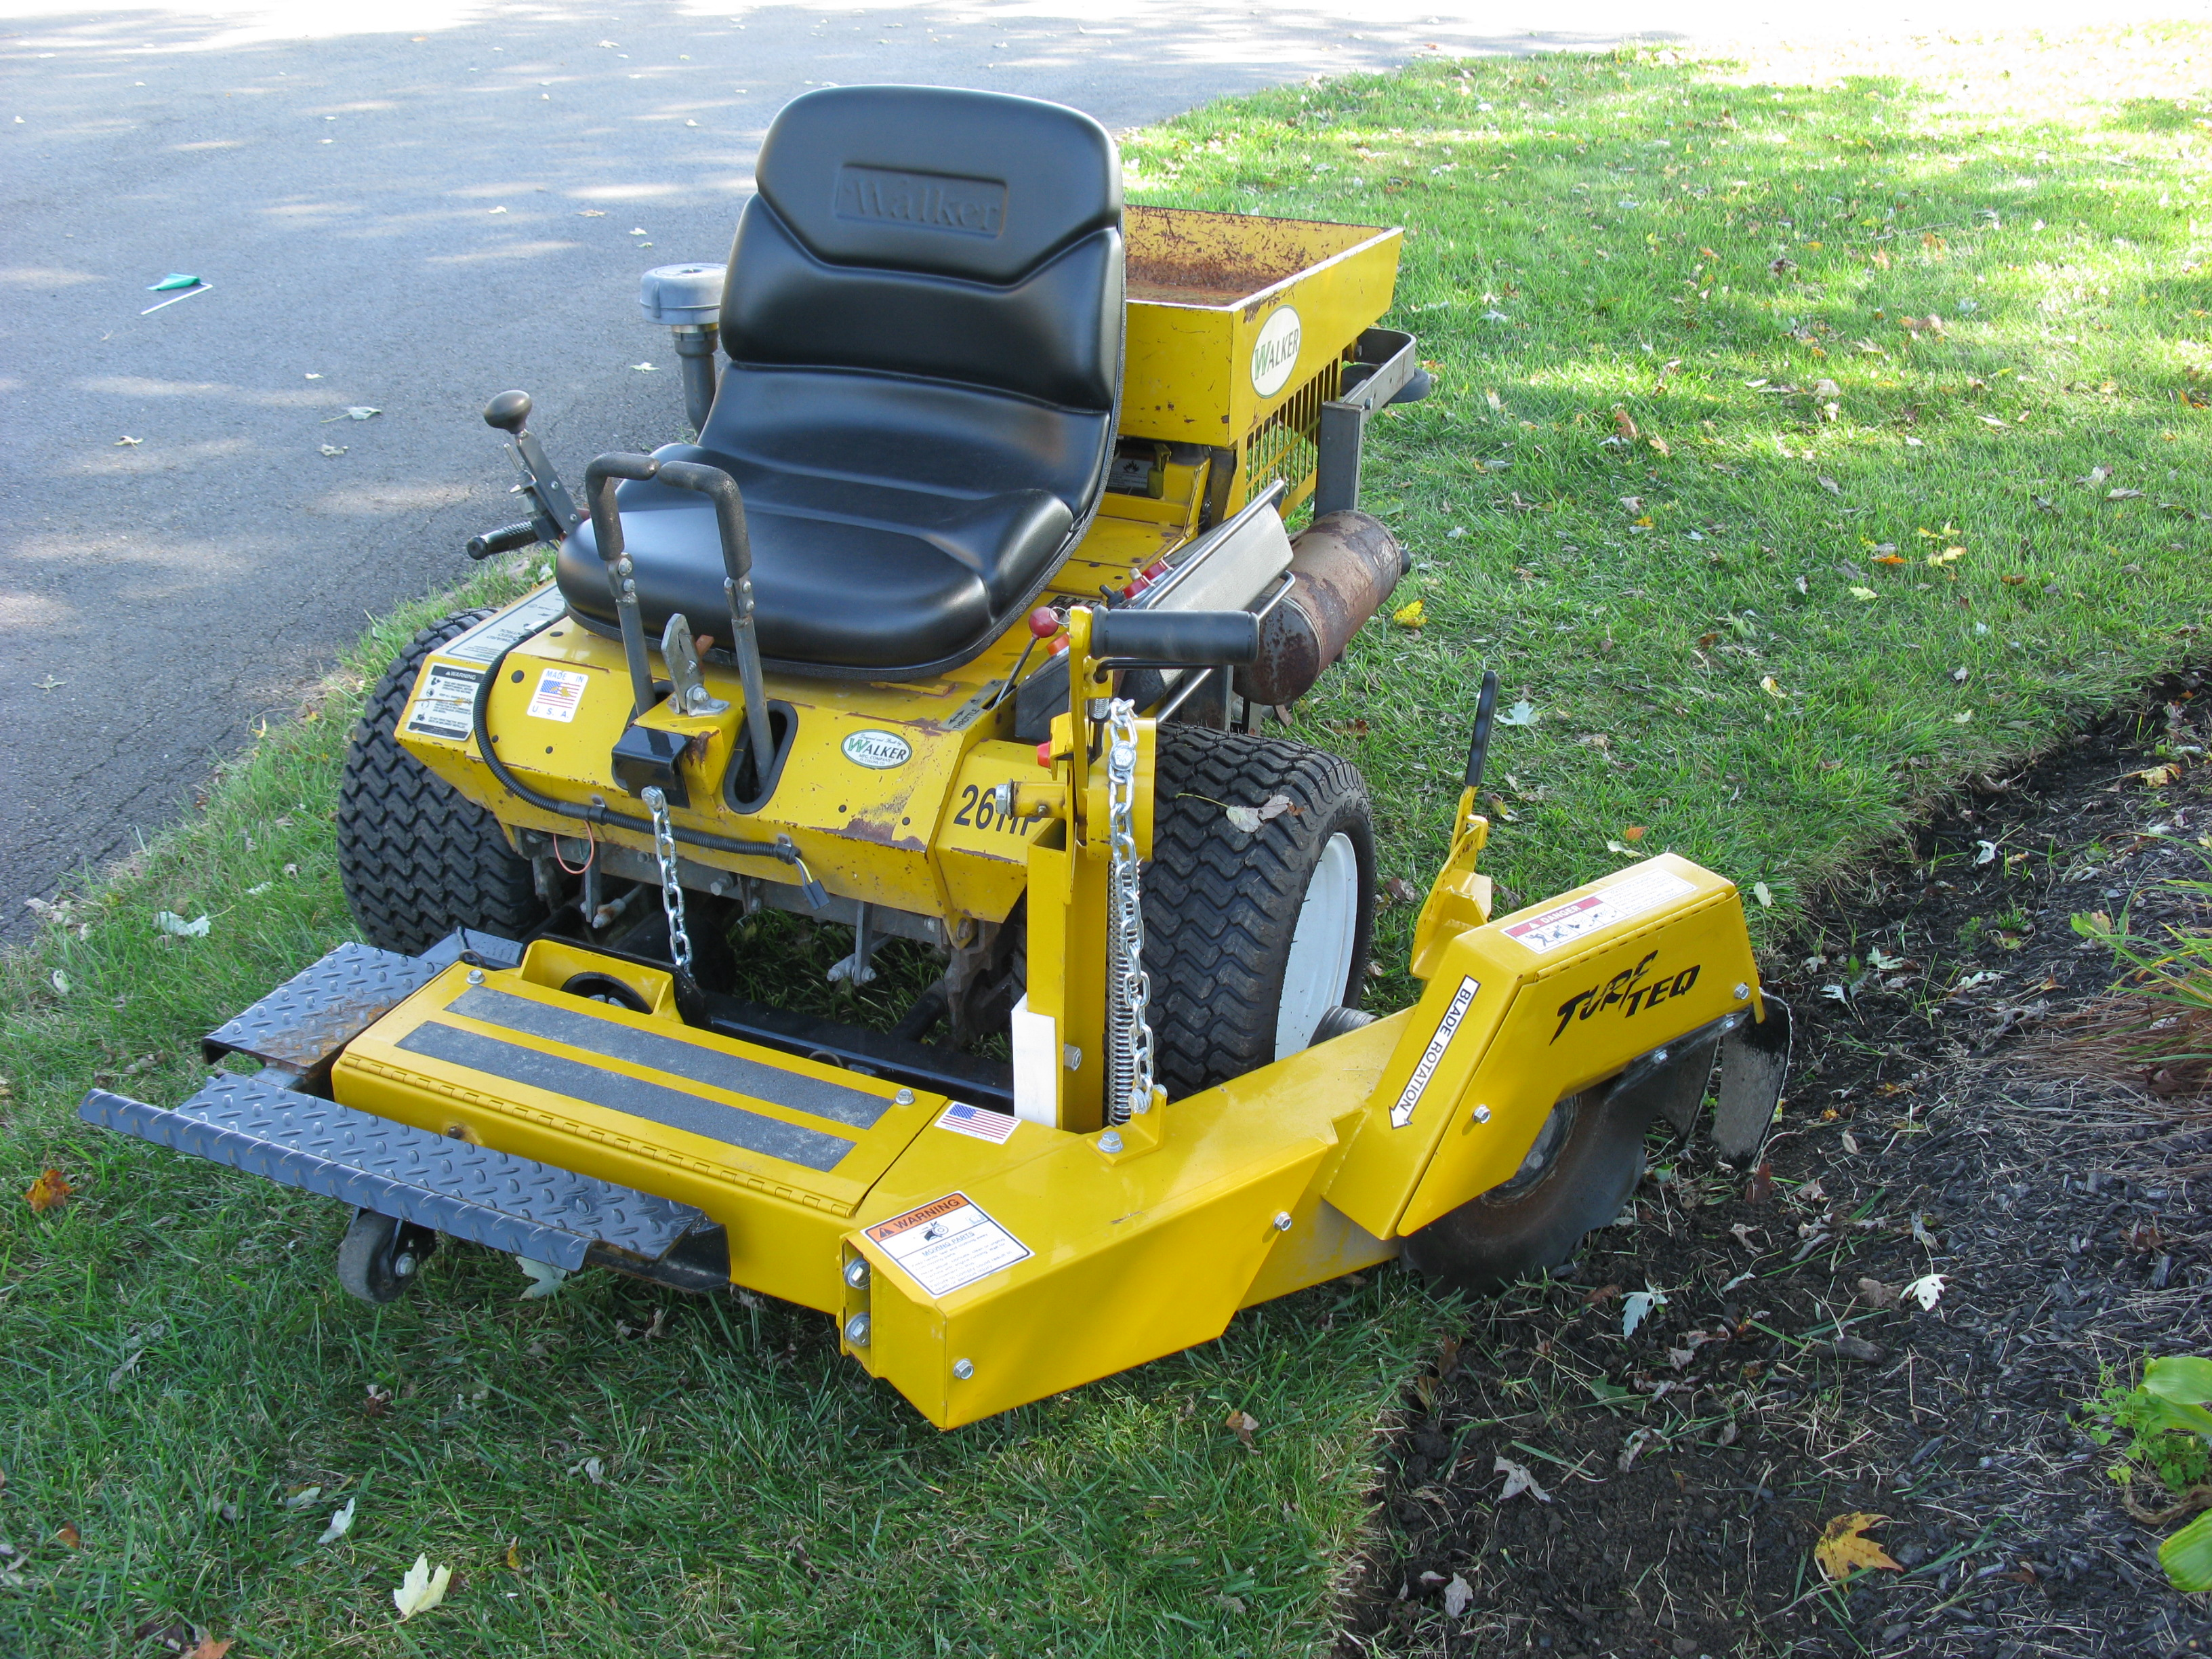 And hustler mower attachments